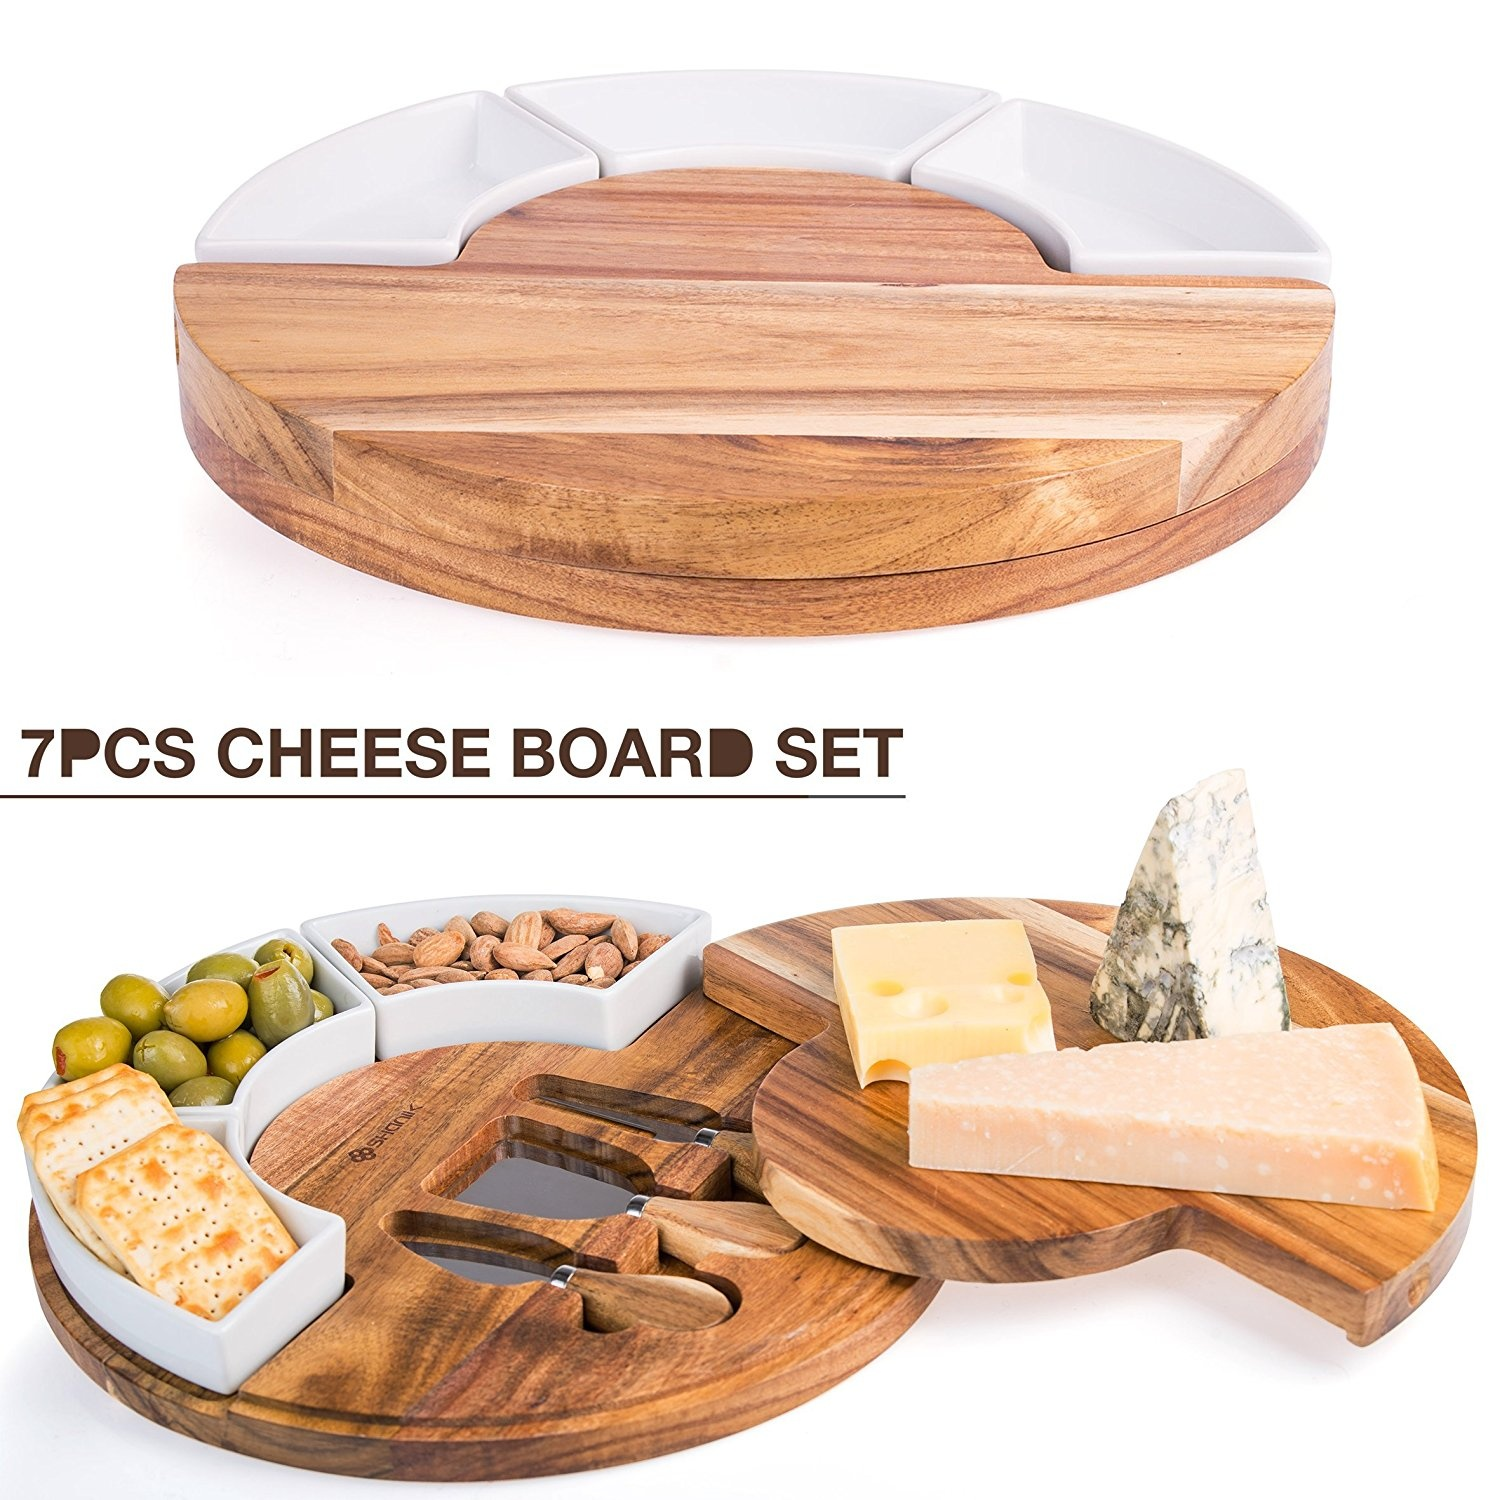 Cheese Board Set Charcuterie Board With Cutlery Knife Set Wood Cheese Serving Platter With 3 Knife Set Plus 3 Ceramic Bowl Perfect Meat Wine